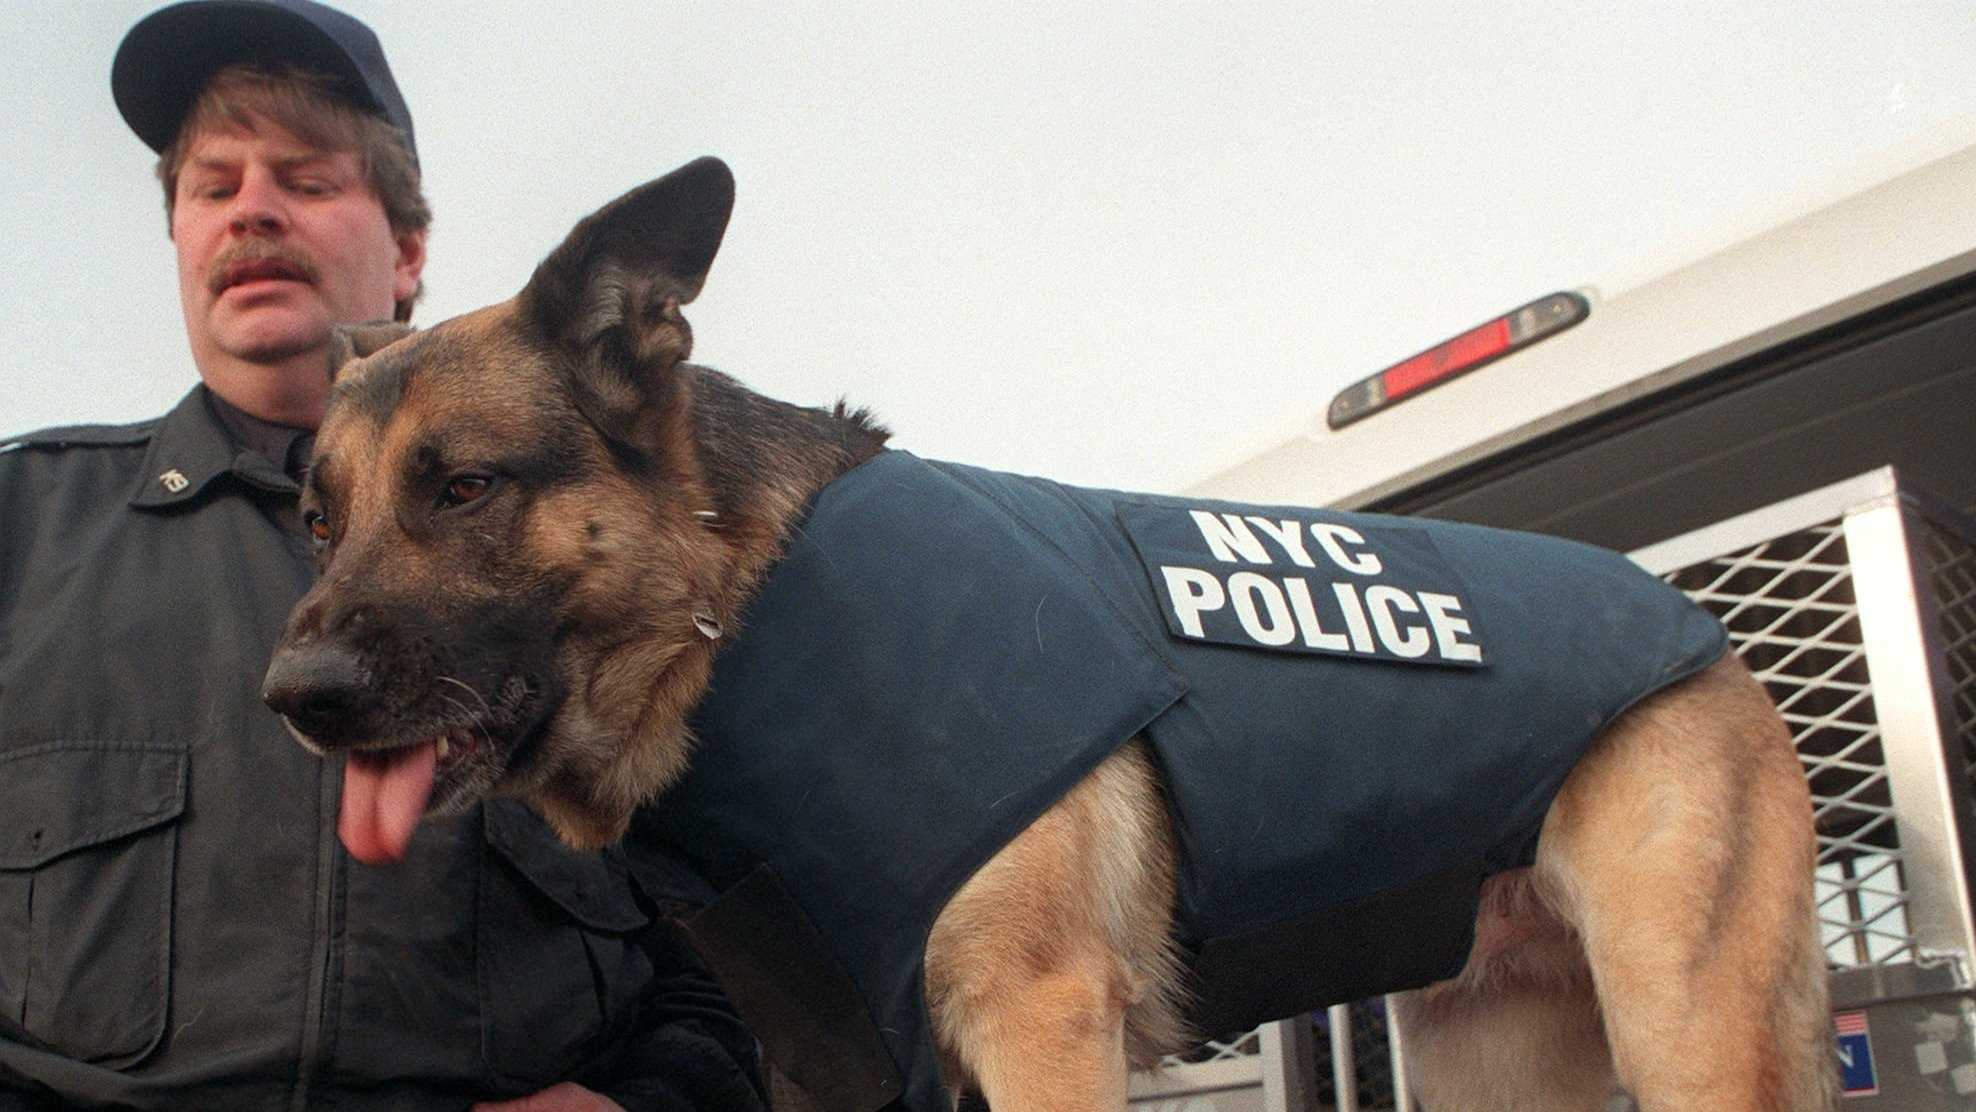 Dog with Bulletproof vest 093013